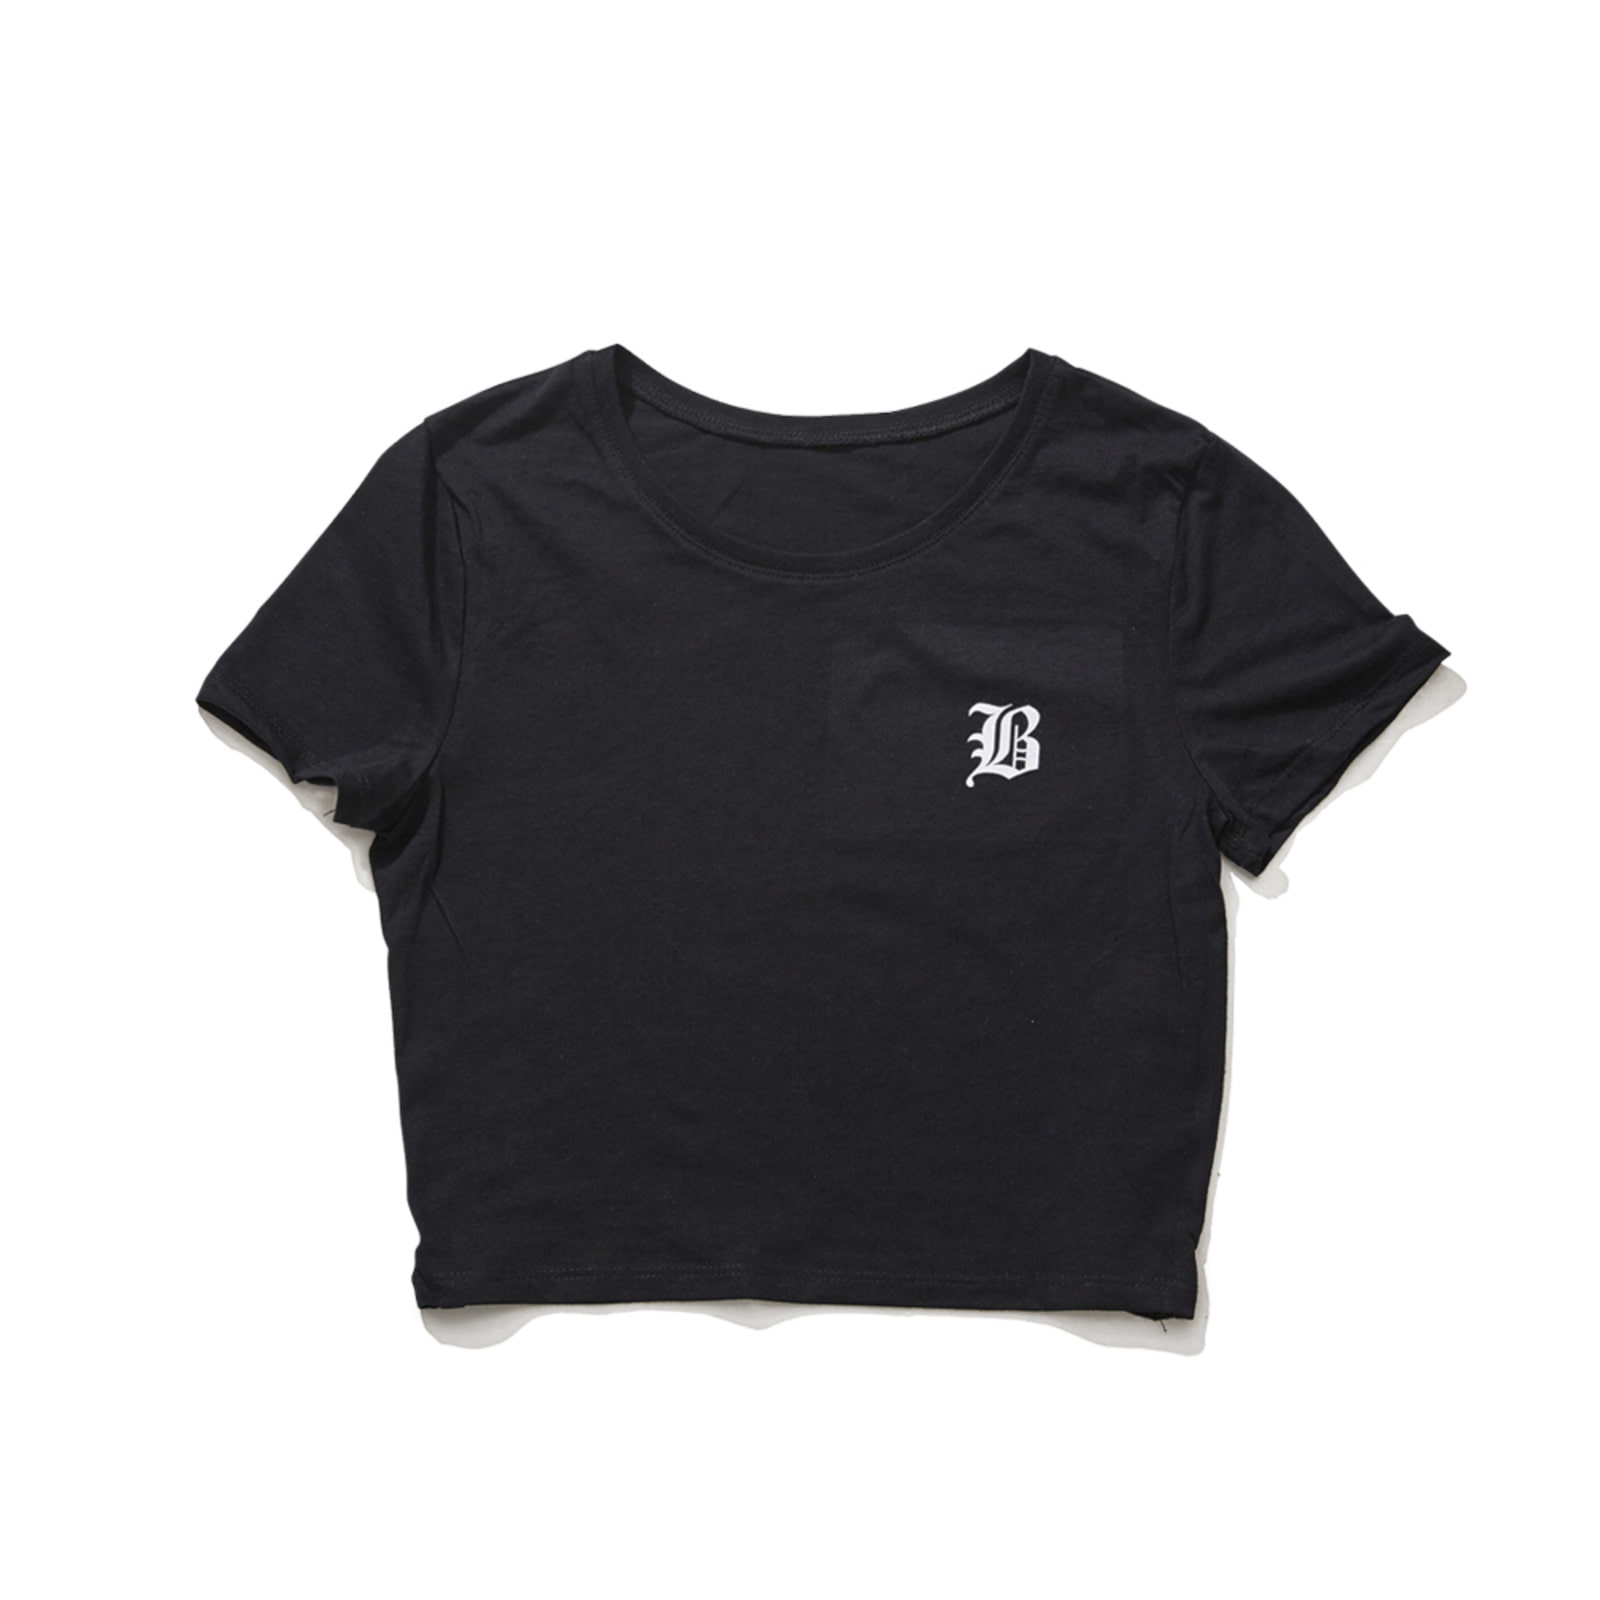 BSRABBIT B CROP T-SHIRT BLACK